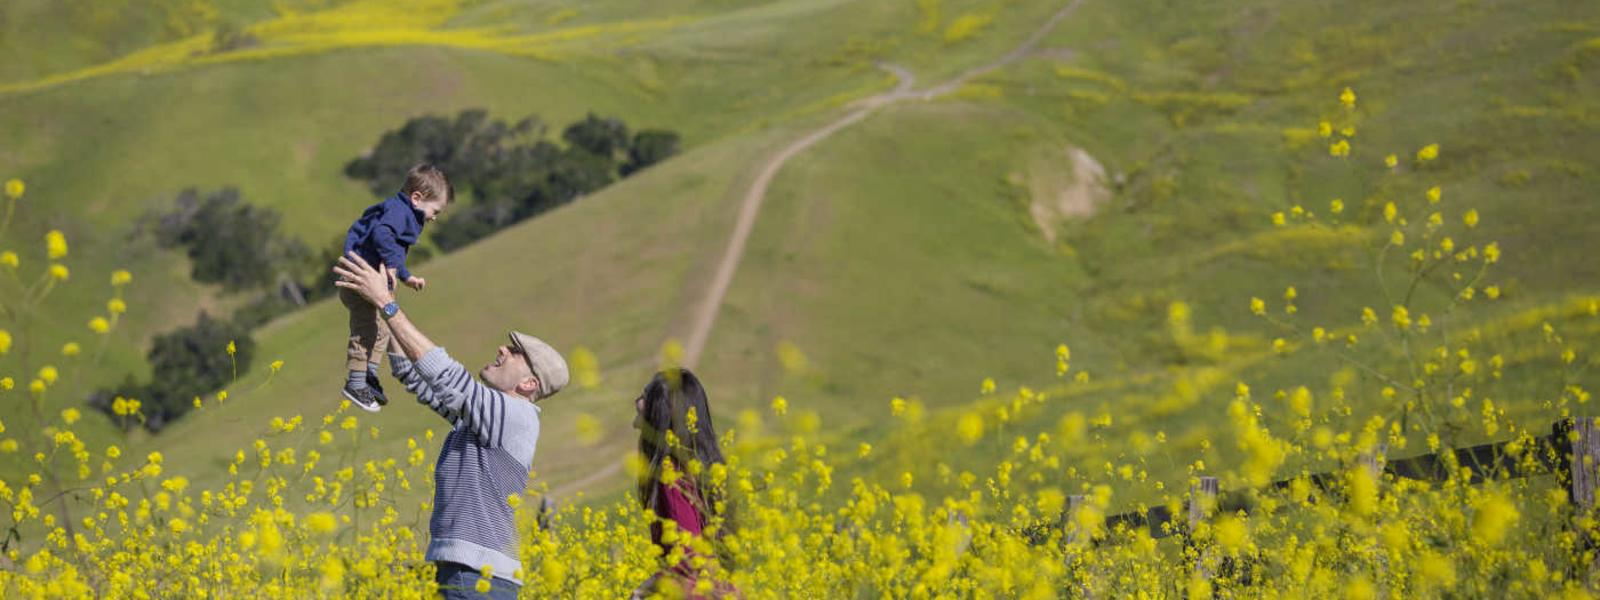 A family enjoys the wildflowers in the hills of SLO CAL